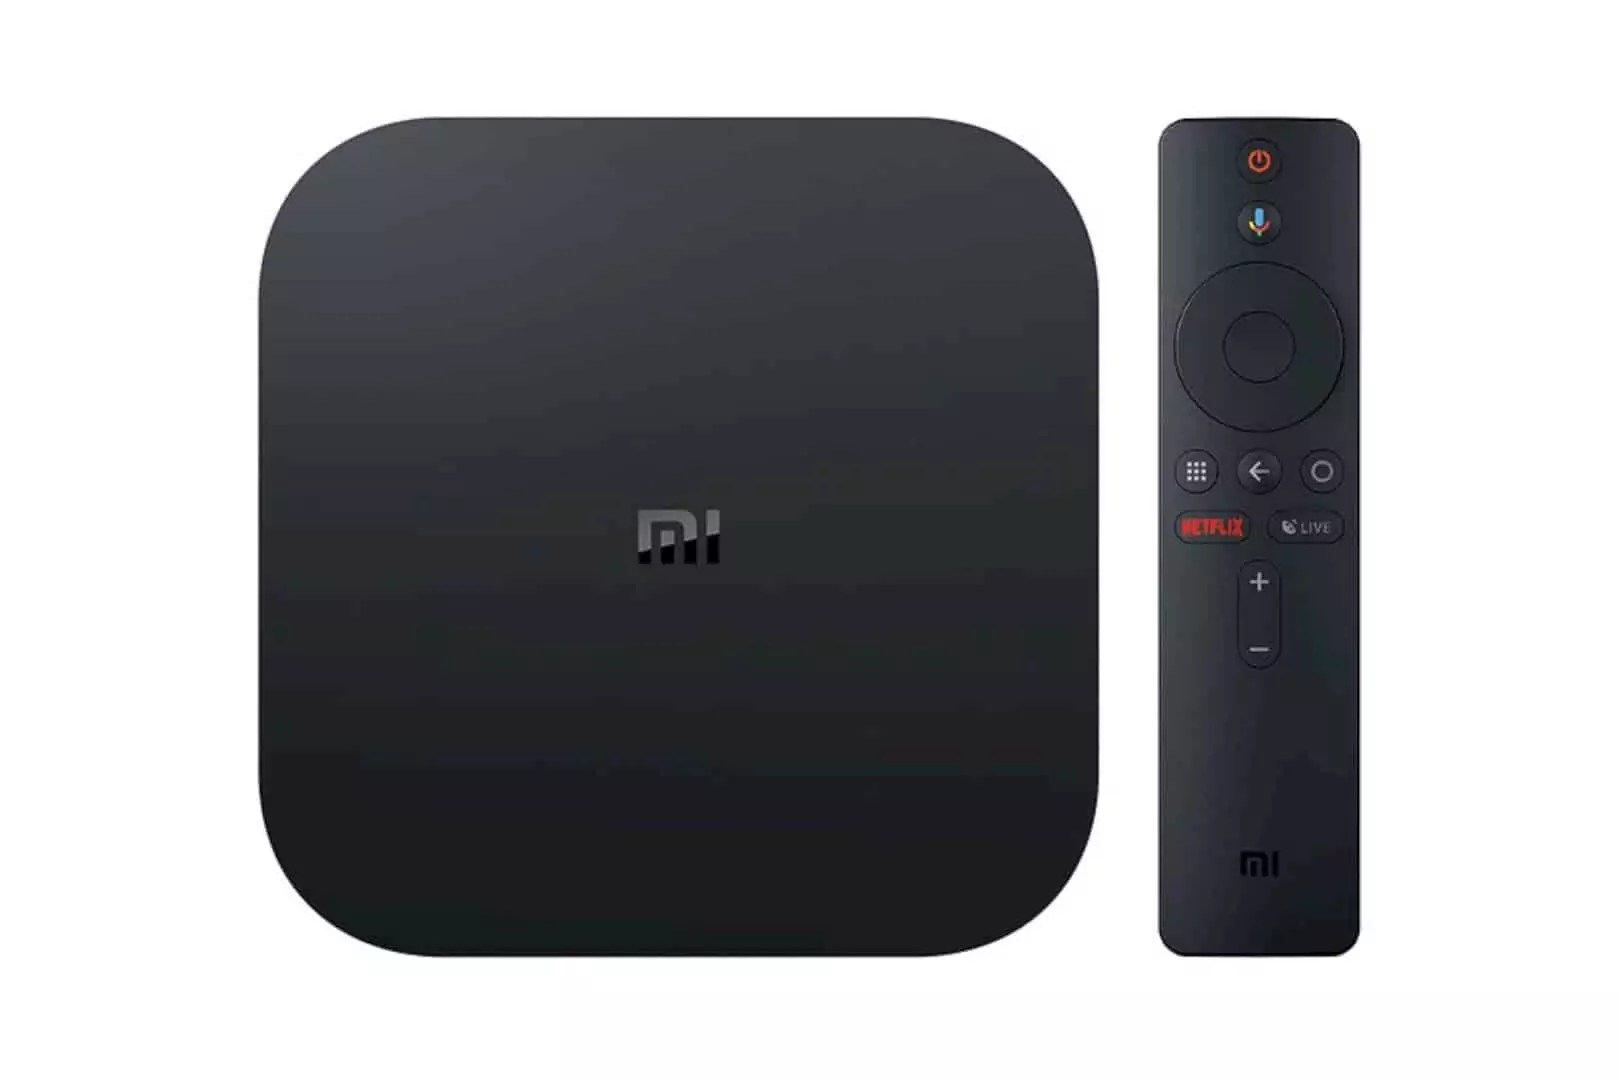 Xiaomi Mi Box S: Powered by Android 8.1 for Superior Functionality